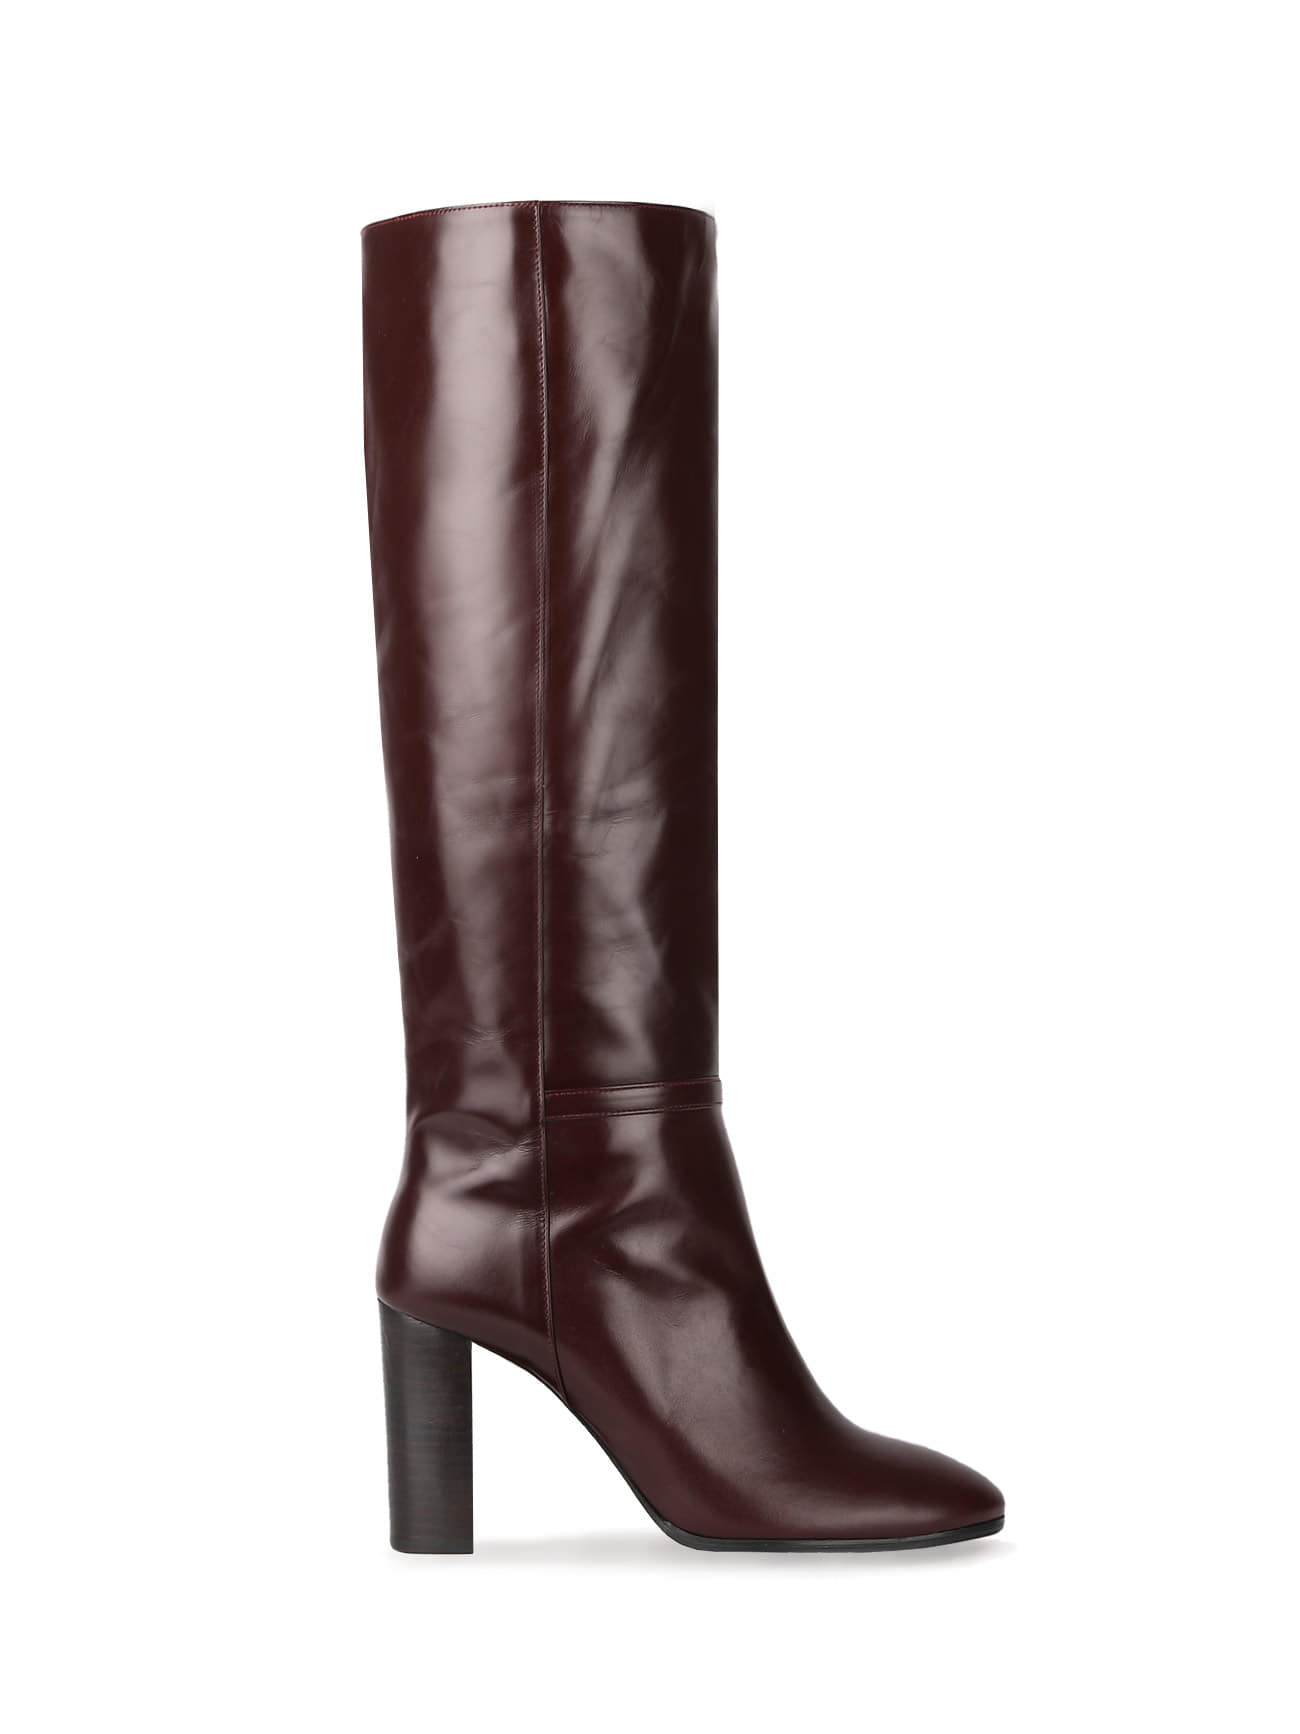 KATE LEATHER KNEE BOOTS (7cm, 9cm) - WINE